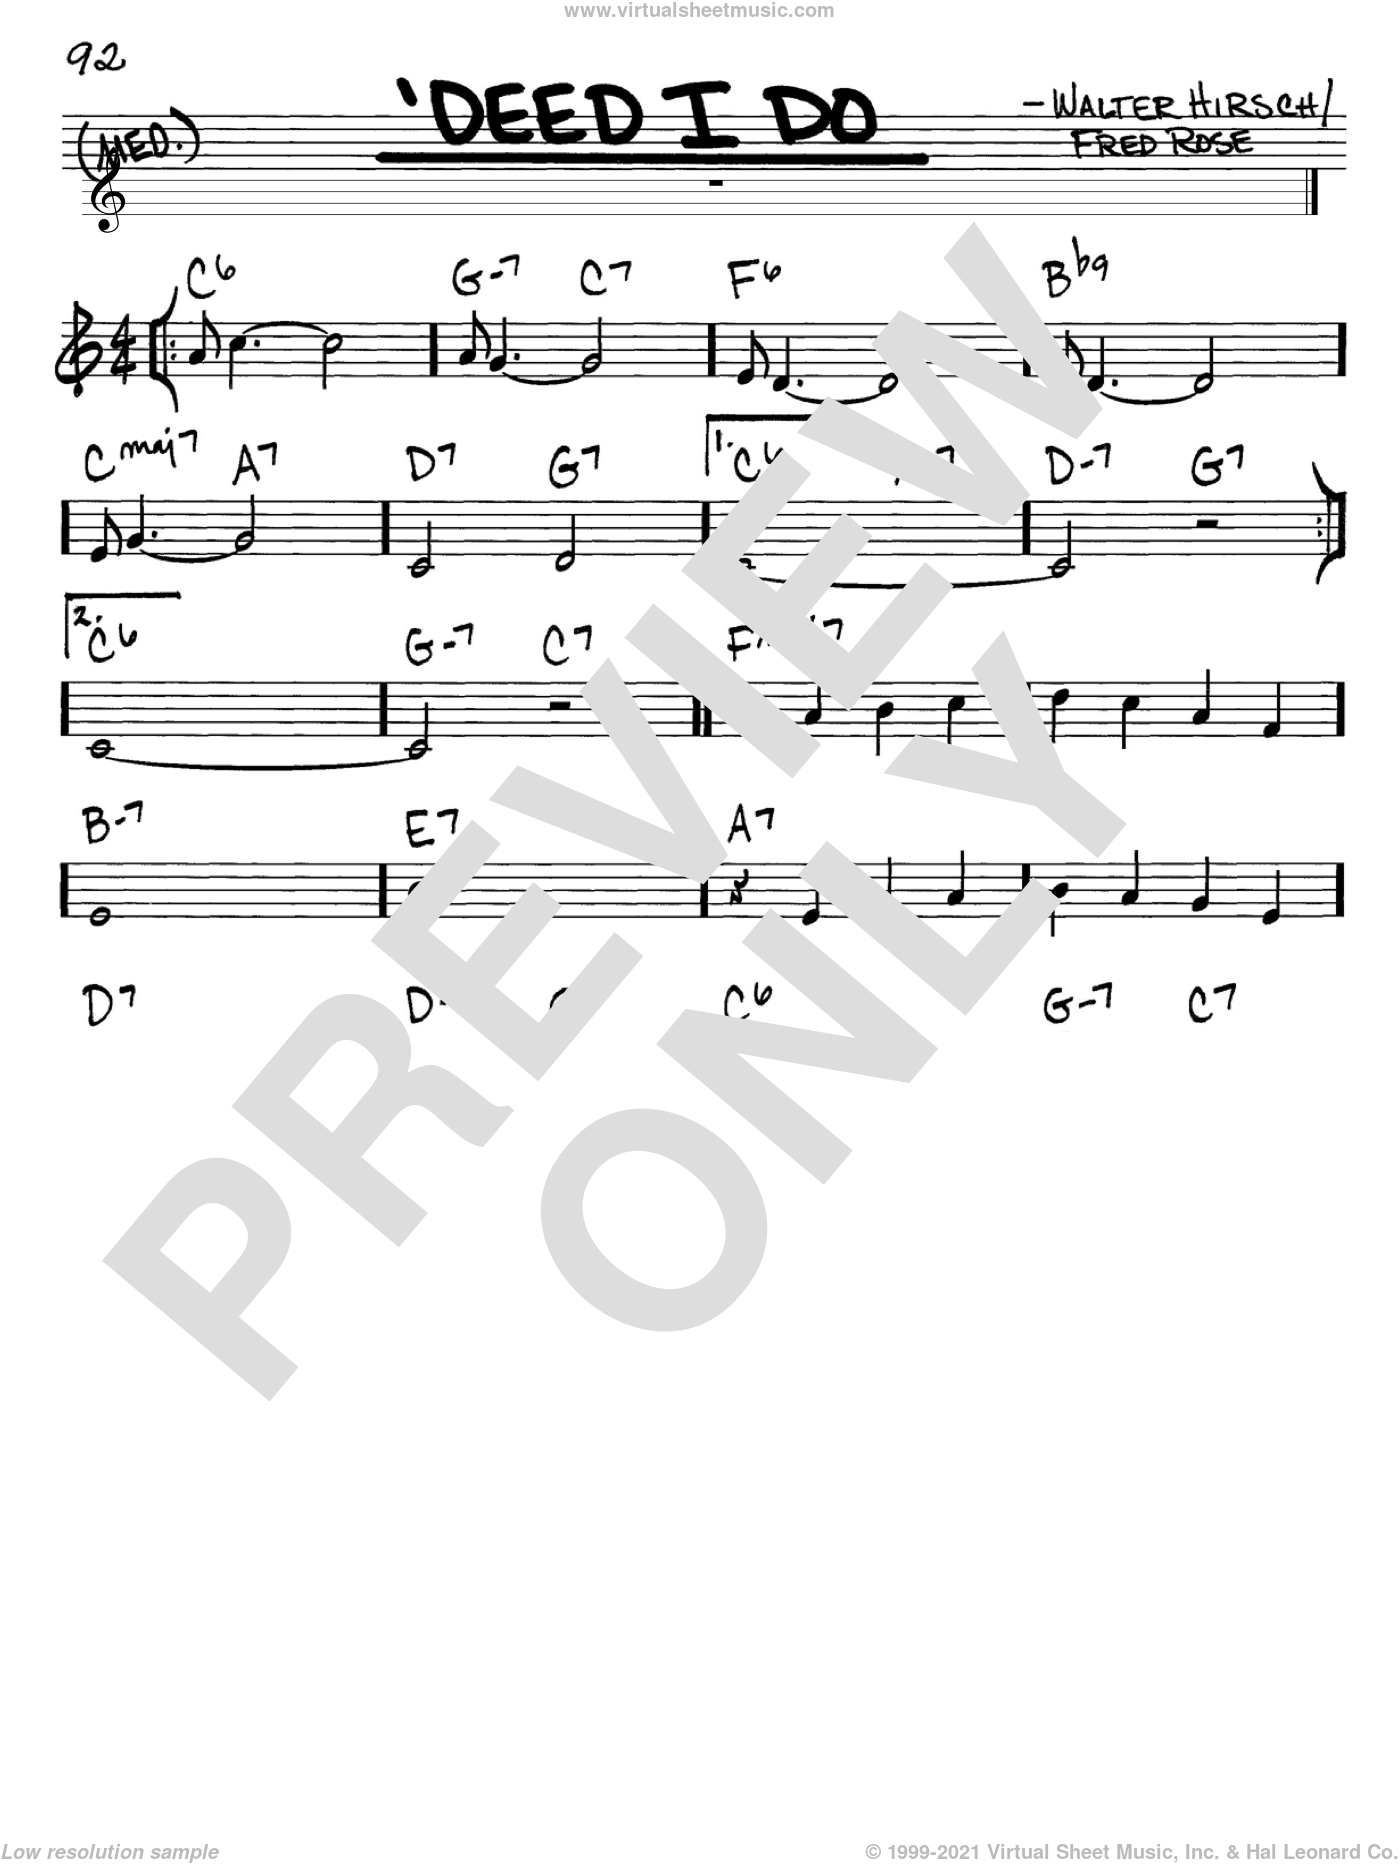 'Deed I Do sheet music for voice and other instruments (C) by Walter Hirsch, Diana Krall and Fred Rose, intermediate voice. Score Image Preview.